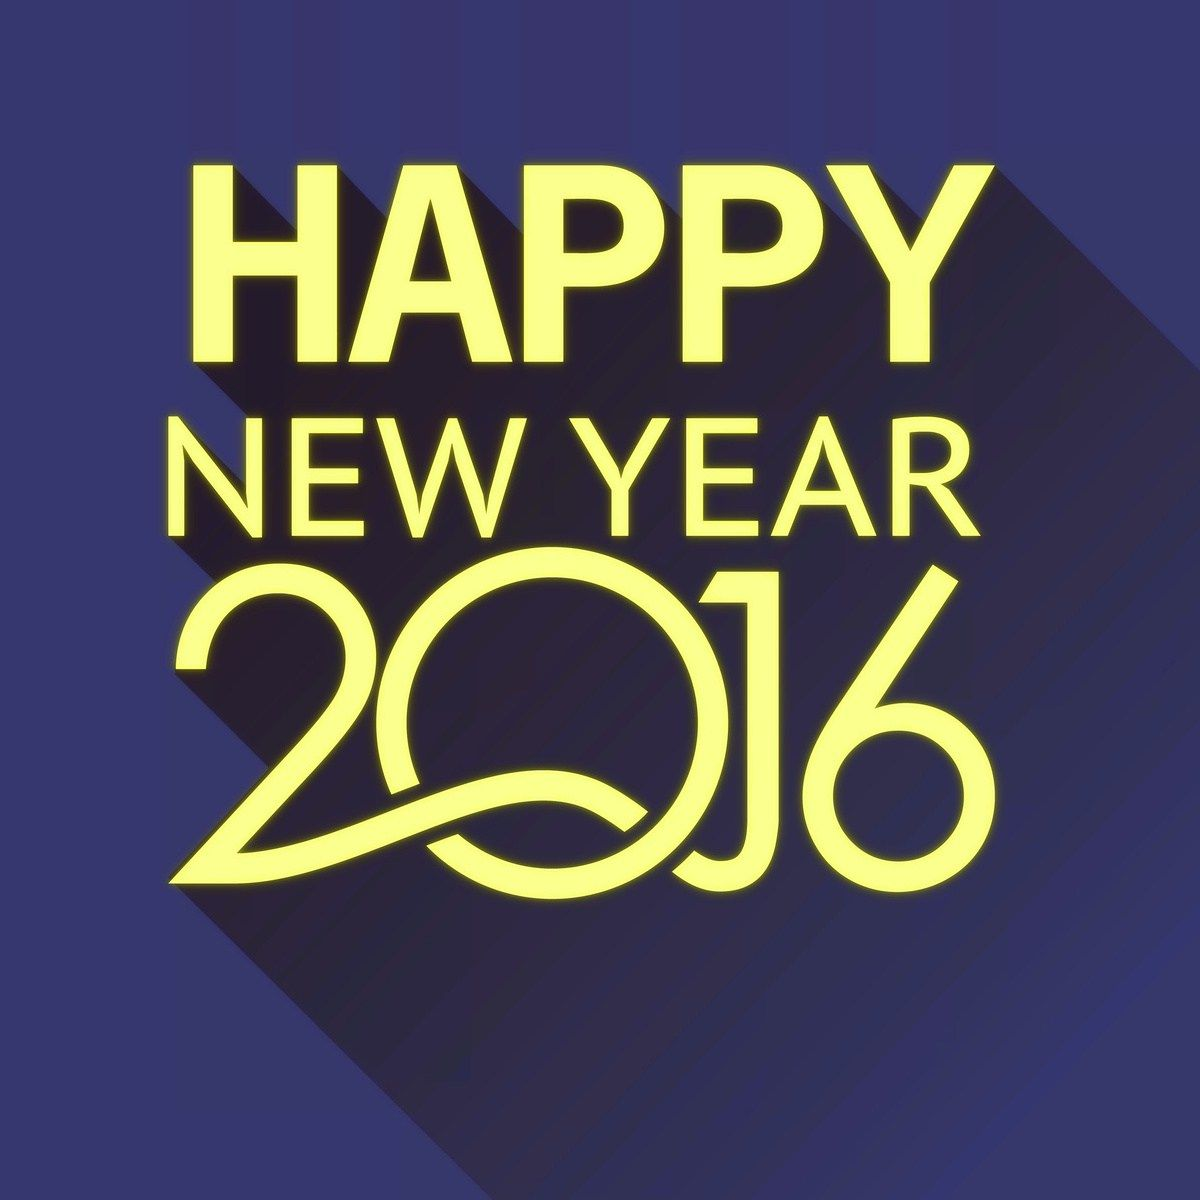 Happy New Year 2016 Sms Wishes Messages For Loved Ones Happy New